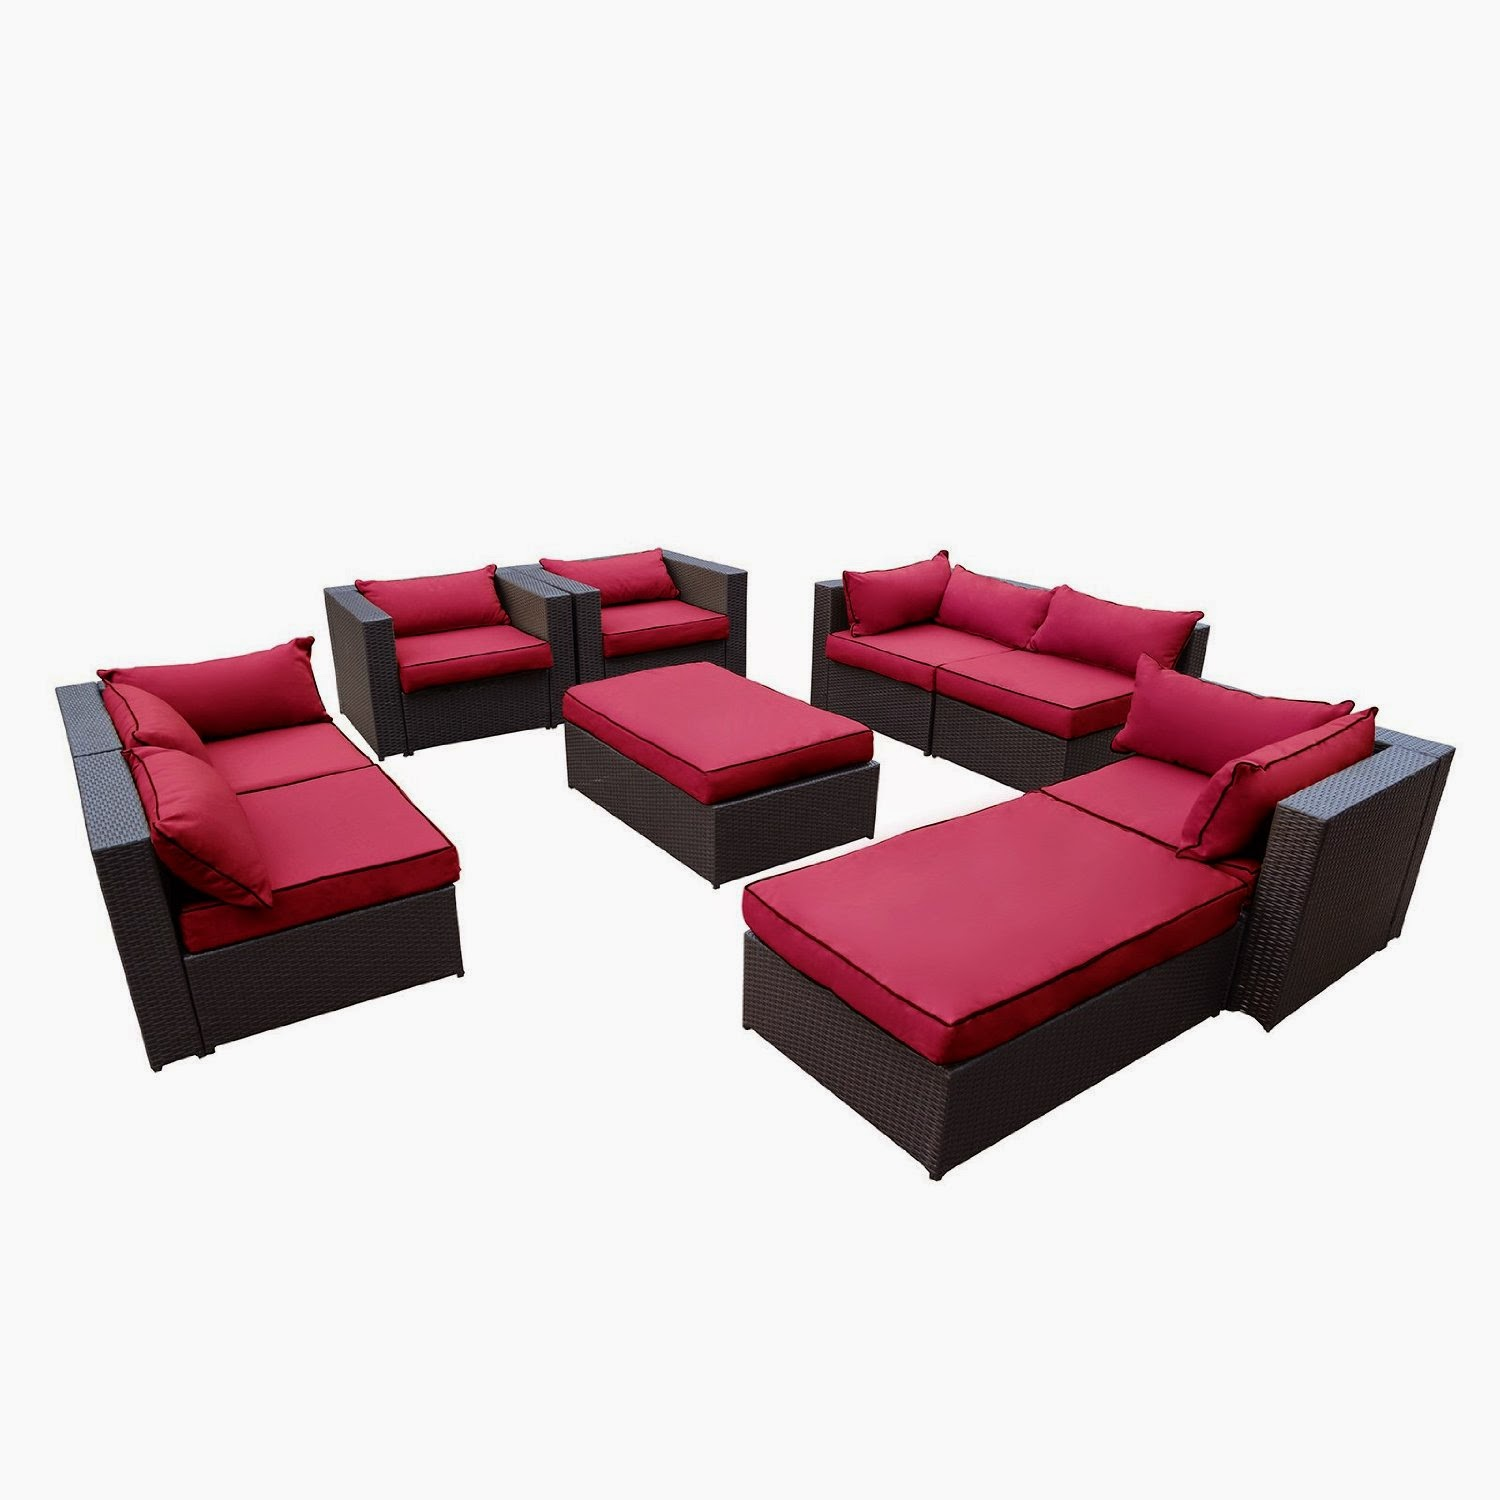 Outdoor patio rattan wicker furniture sectional sofa for Rattan outdoor furniture